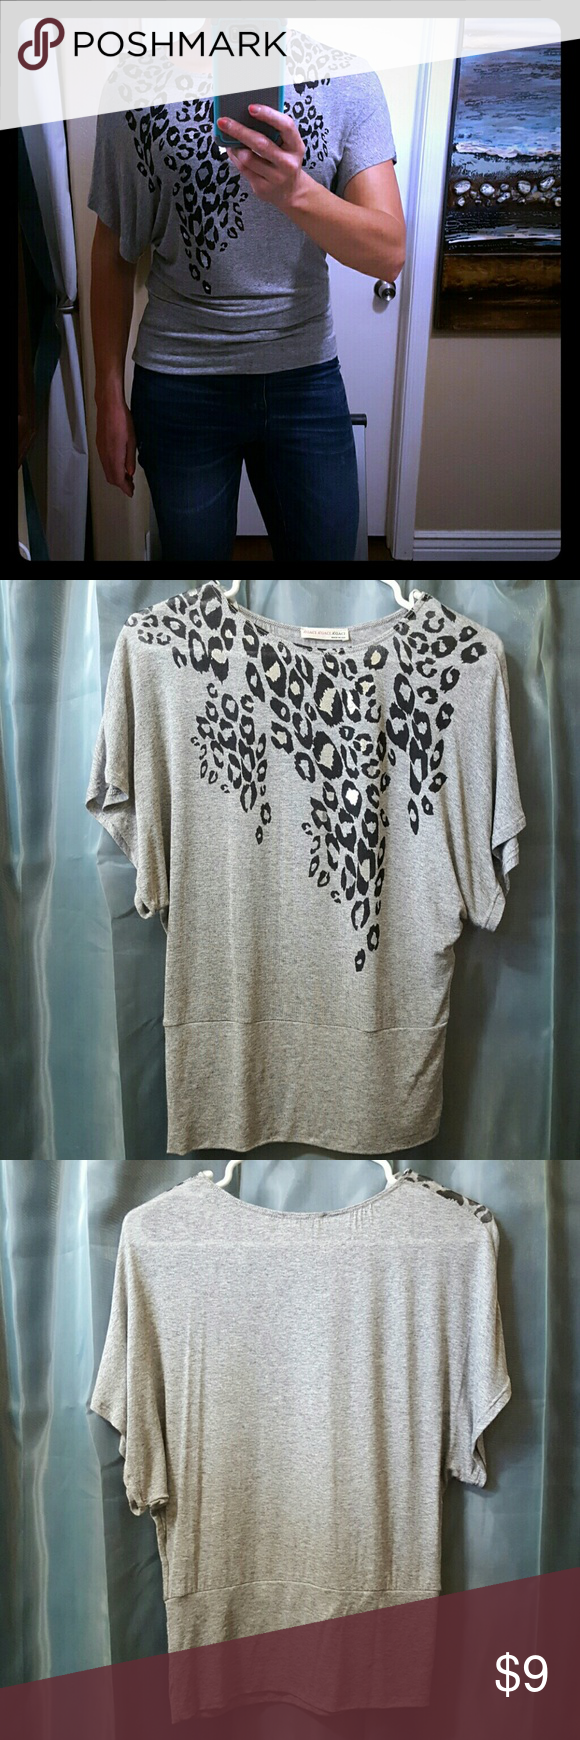 NWOT Black & Grey Spotted Top Never been worn! This cute top has wide sleeves and a slight cinch at the waist. There is a shiny silver fabric  in the center of some black spots (see pic for close up pic). a'gaci Tops